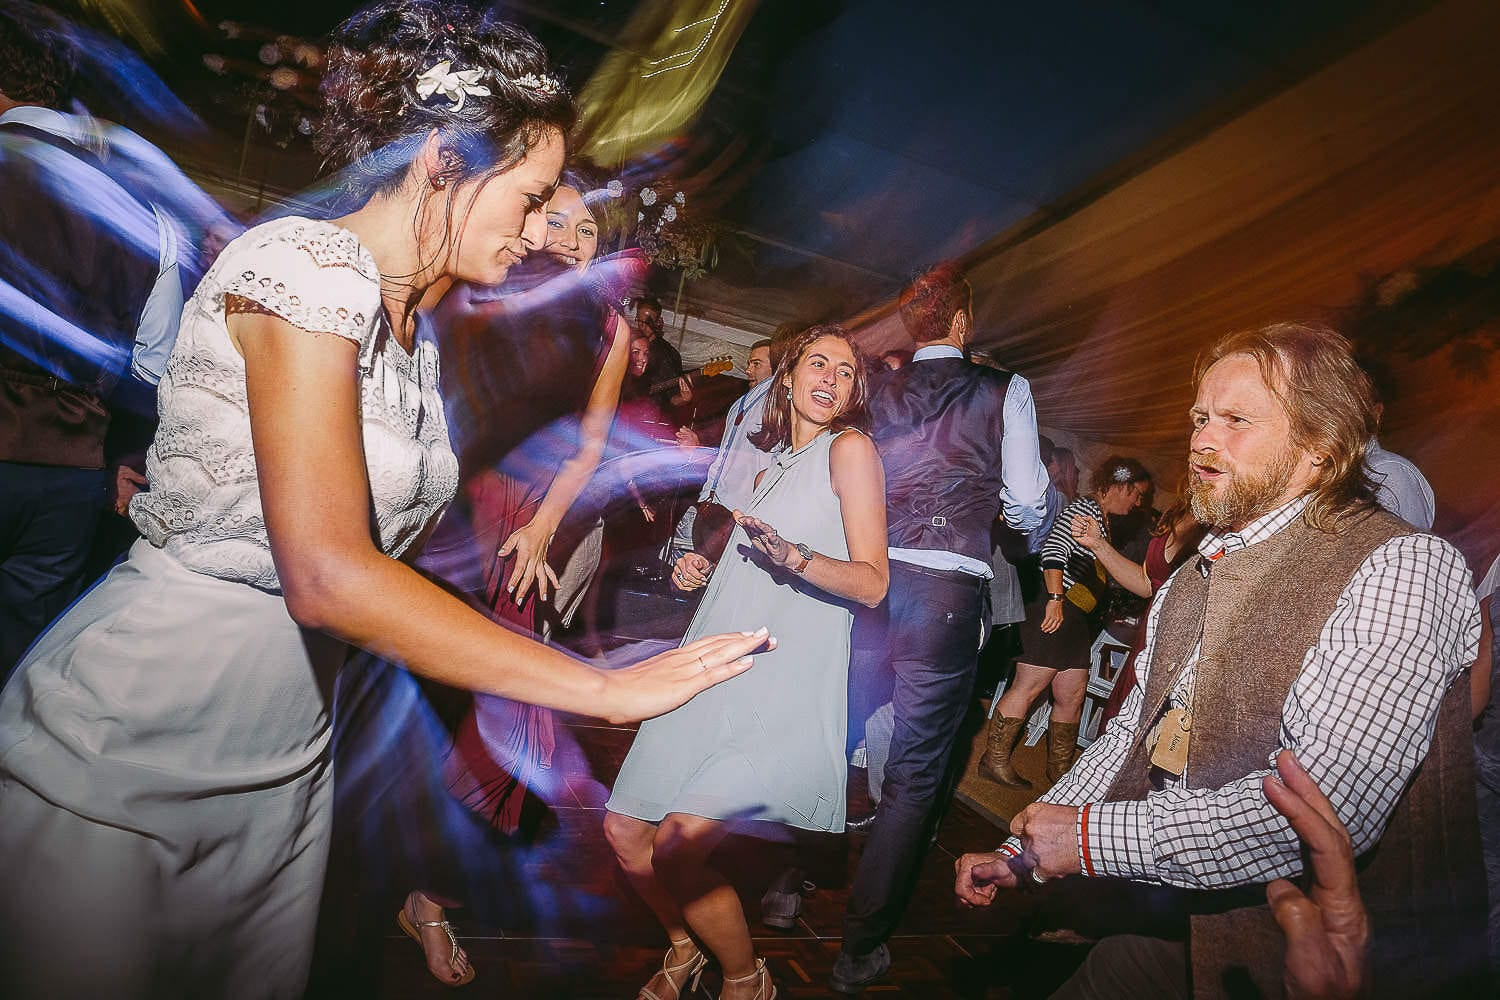 The bride and wedding guests dancing